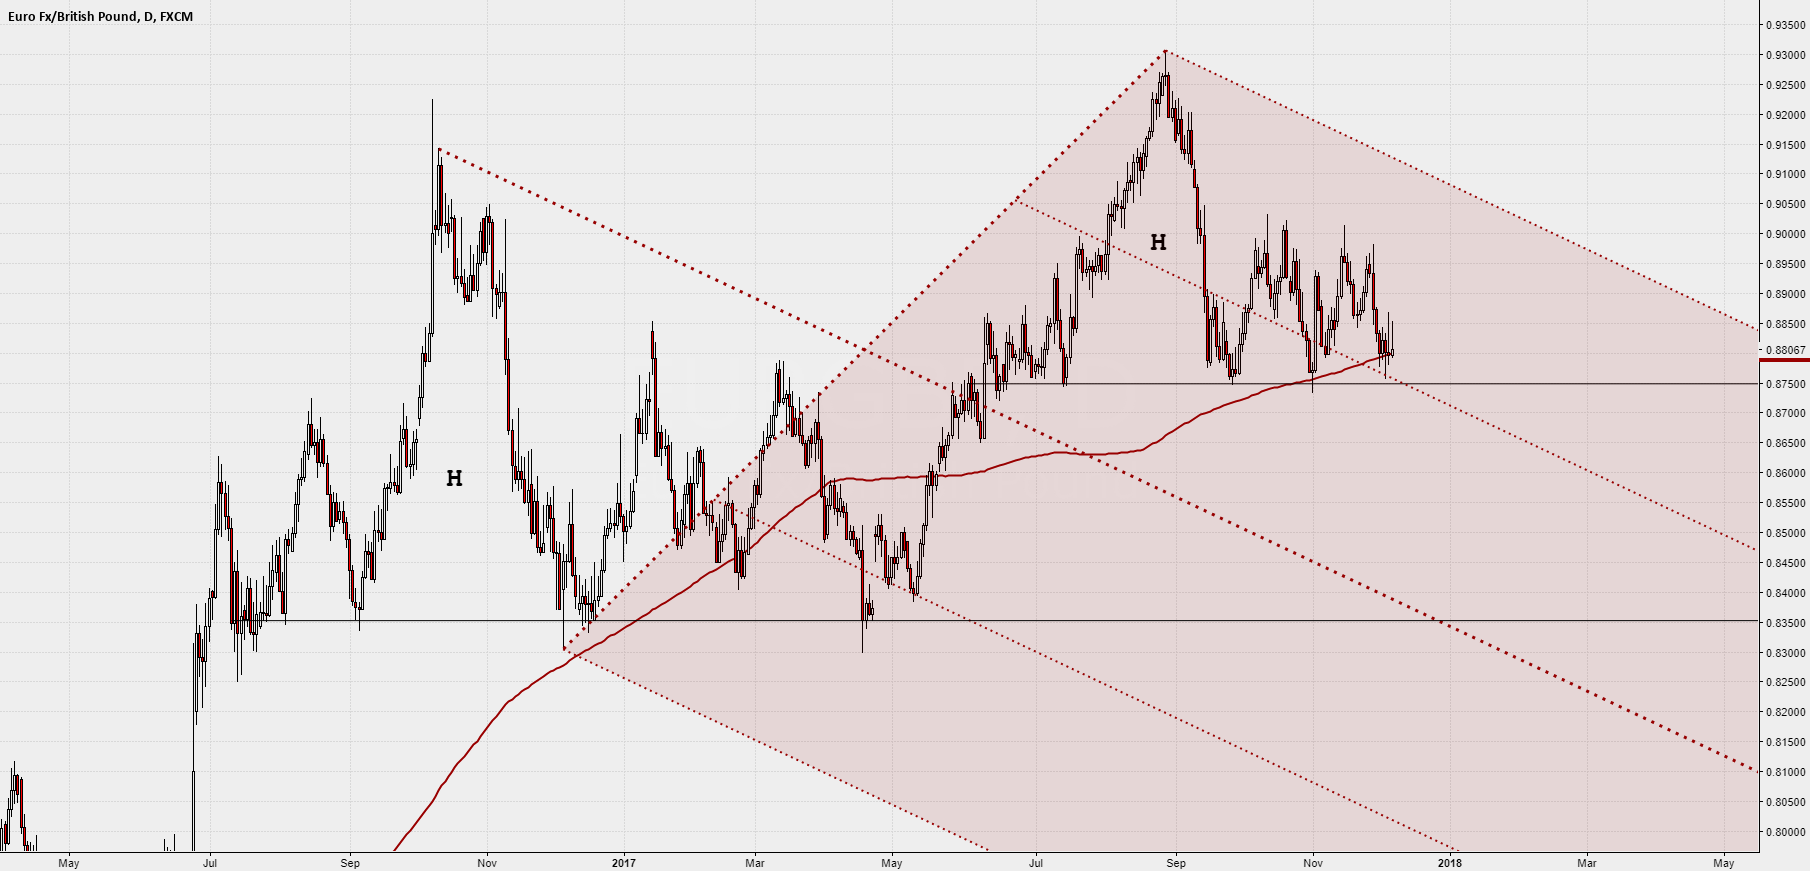 $EURGBP daily with Median Line